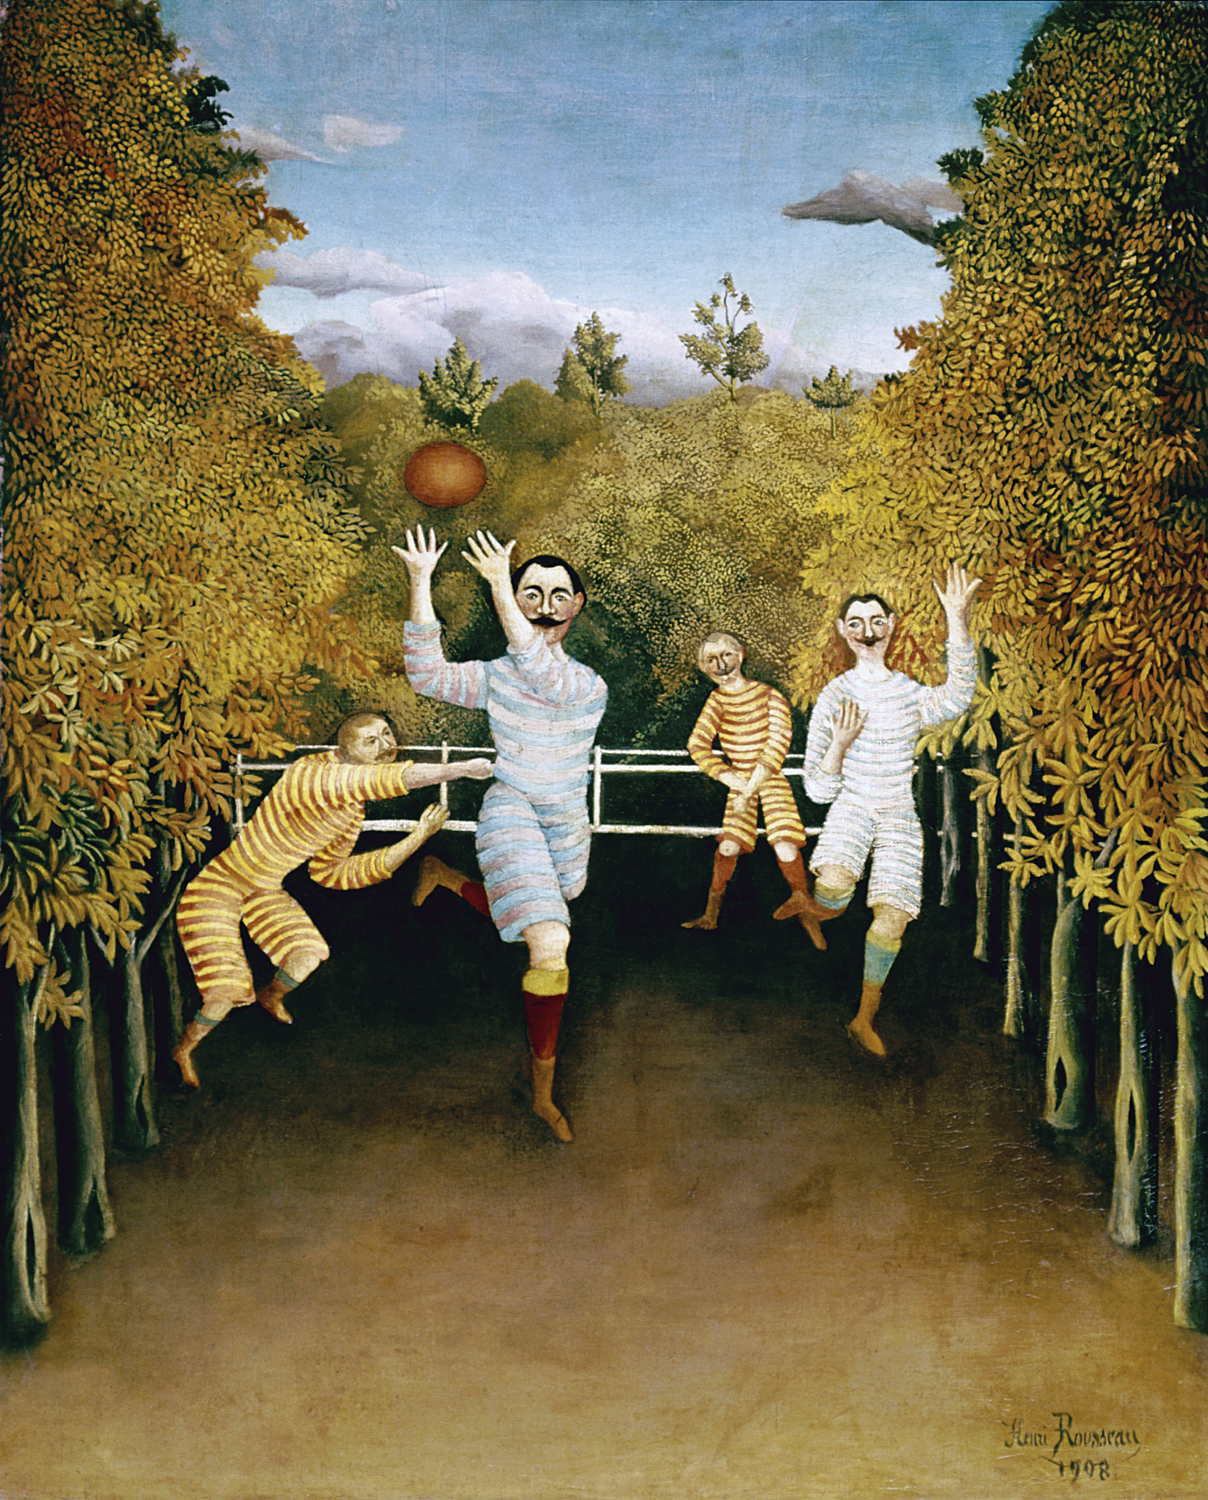 The Football Players, by Henri Rousseau, 1908. Solomon R. Guggenheim Museum, New York, New York.